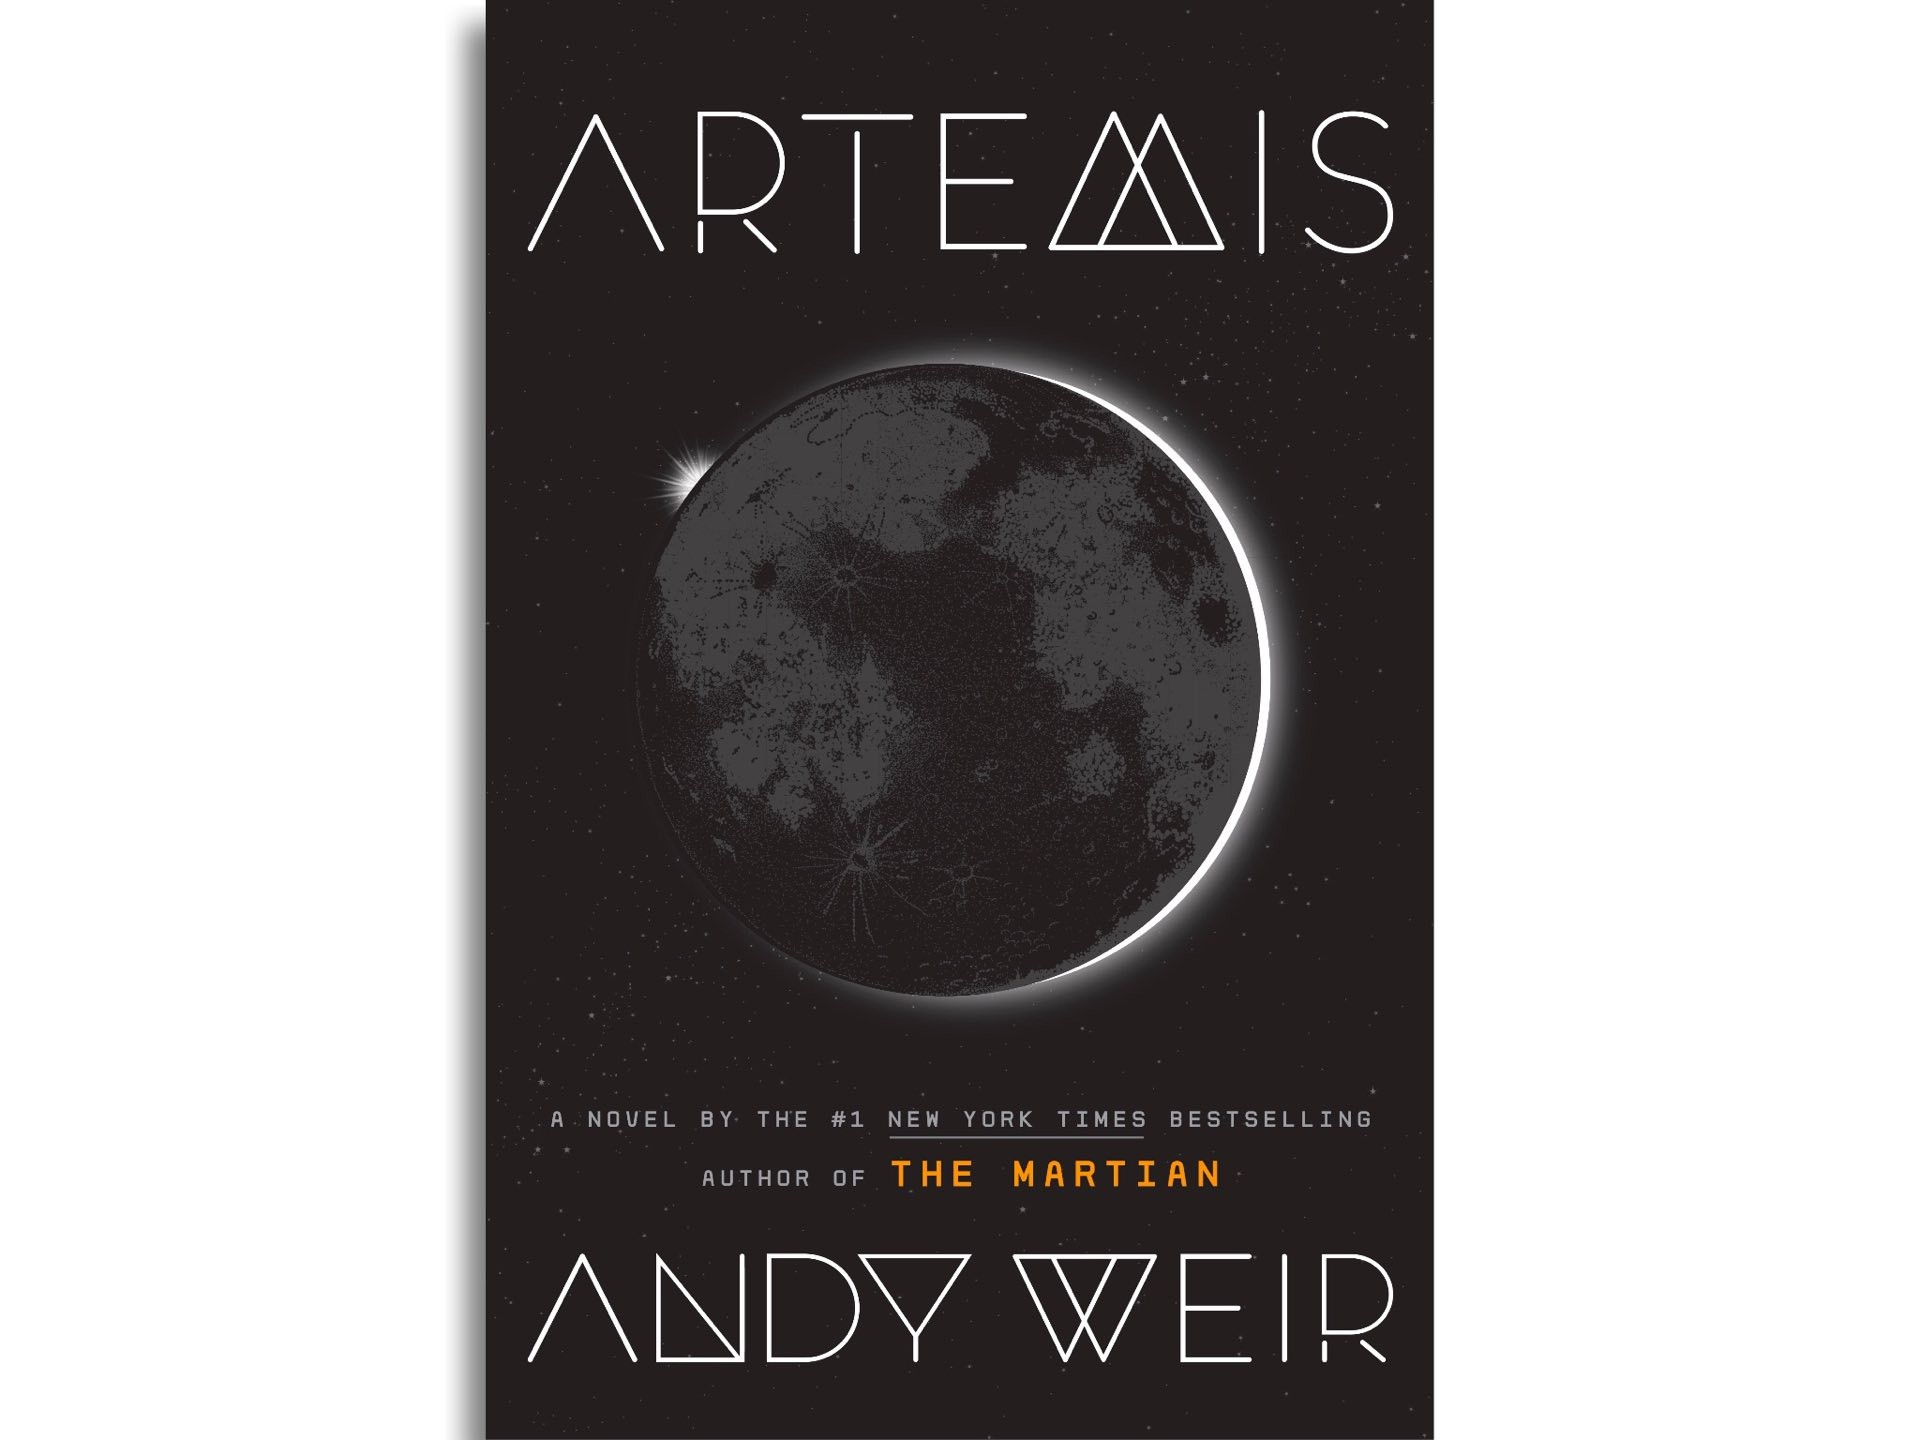 Artemis by Andy Weir. ($17 hardcover)